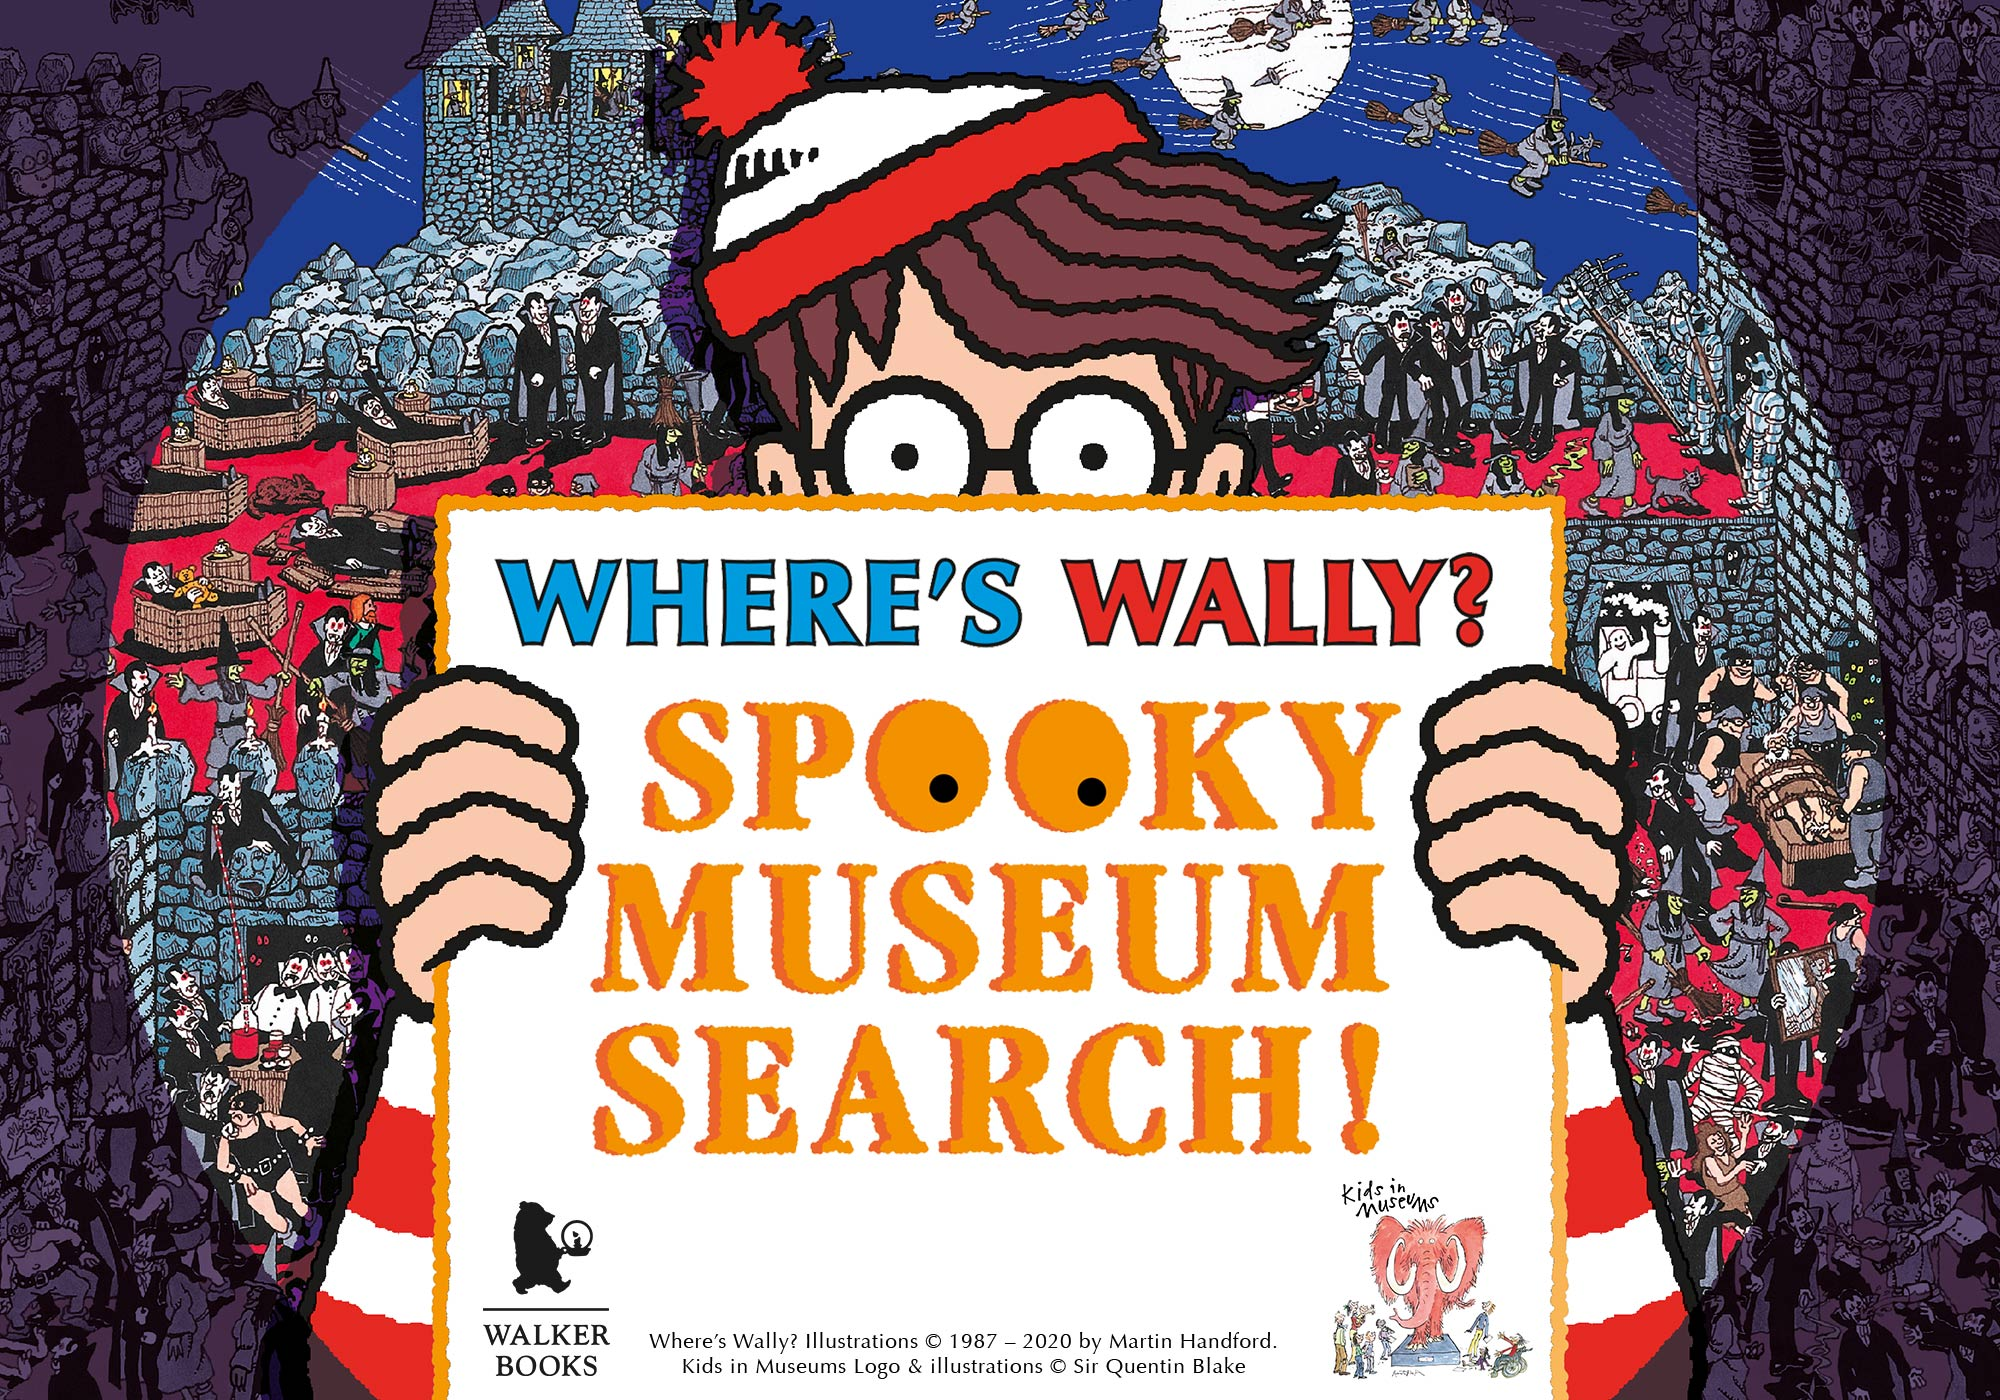 Where's Wally? Spooky Museum Search at the National Civil War Centre Newark